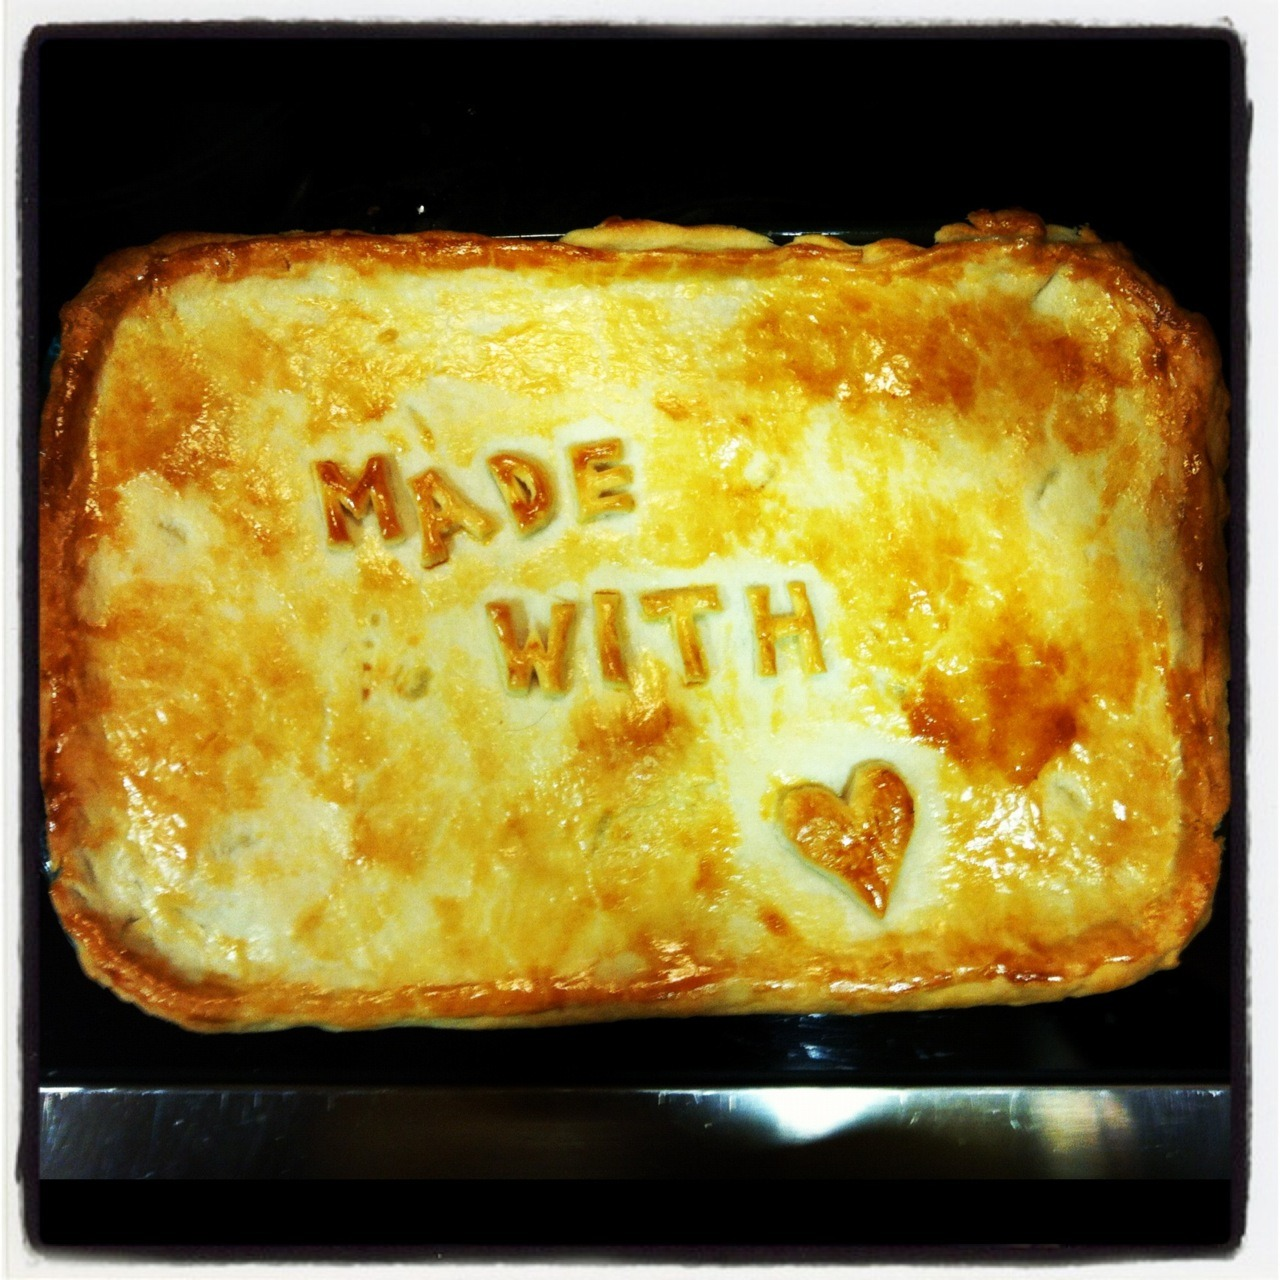 Matt's Chicken Pot Pie (Made With Love) YUMMY! Chicken pot pie is one of my favorite hearty (and also fatty) home-cooked meals. My mom used to make it for my brother and I growing up, so just the idea of chicken pot pie makes me happy. My brother gave me this delicious and very simple recipe and if it didn't make such big portions, I would make it all the time! I went on an amazing trip to Lake Tahoe with my boyfriend Zack and we made this together for dinner. It turned out really well and he was still thinking about it weeks later! Ingredients: 1 chopped onion 1 chopped carrot peas & corn (or any other veggies you like) 1 russet potato diced mushrooms 2-3 chicken breasts raw chicken stock (32 oz) OR 2 chicken bullion cubes + 6 cups water  heavy whipping cream flour  one egg *optional: uncooked hard little beans*   HOW TO:  - Sauté diced chicken with salt and pepper in a pan, don't worry too much about cooking it all the way through. Meanwhile, bring veggies (potatoes and mushrooms)  to boil in the chicken stock (and water if you need to add some. Or the two chicken bullion cubes and water). Once chicken is sauted, toss into veggie stew with peas and corn.  Allow stew mixture to simmer - NOT BOIL - for 20-30 minutes.  Add heavy whipping cream and stir. Put 1/2 cup of flour in a large mixing bowl. Use ladle to remove 6 ladles worth of stock mixture without any veggies, pour into bowl and whip with a whisk. ***Whisk until smooth!!! There need to be NO chunks. If it gets chunky, add more hot stew broth and keep whipping it, the chunks will disappear.*** Make it to desired consistency, it will thicken slightly in the oven. Put thickened mix back into pot. Preheat oven to 325. Buy sheets of pie crust or puff pastry sheets. Line pregreased (with butter or canola vegetable oil) casserole dish with pie crust. Line this with aluminum foil. Fill with uncooked beans. Cook for 10-15 minutes at 325. If it's a glass dish you can check through the glass to see the color of the dough. You want it to have gone from white to yellow, but not fully cooked. Take out of oven, remove foil and beans. Put pie filling in. Add top unbaked layer of pie crust to the top. Decorate. Cut little slits in the top layer. Brush the top layer of the pie with one raw beaten egg. Bake at 325 until the top layer is perfectly golden brown. Tada!